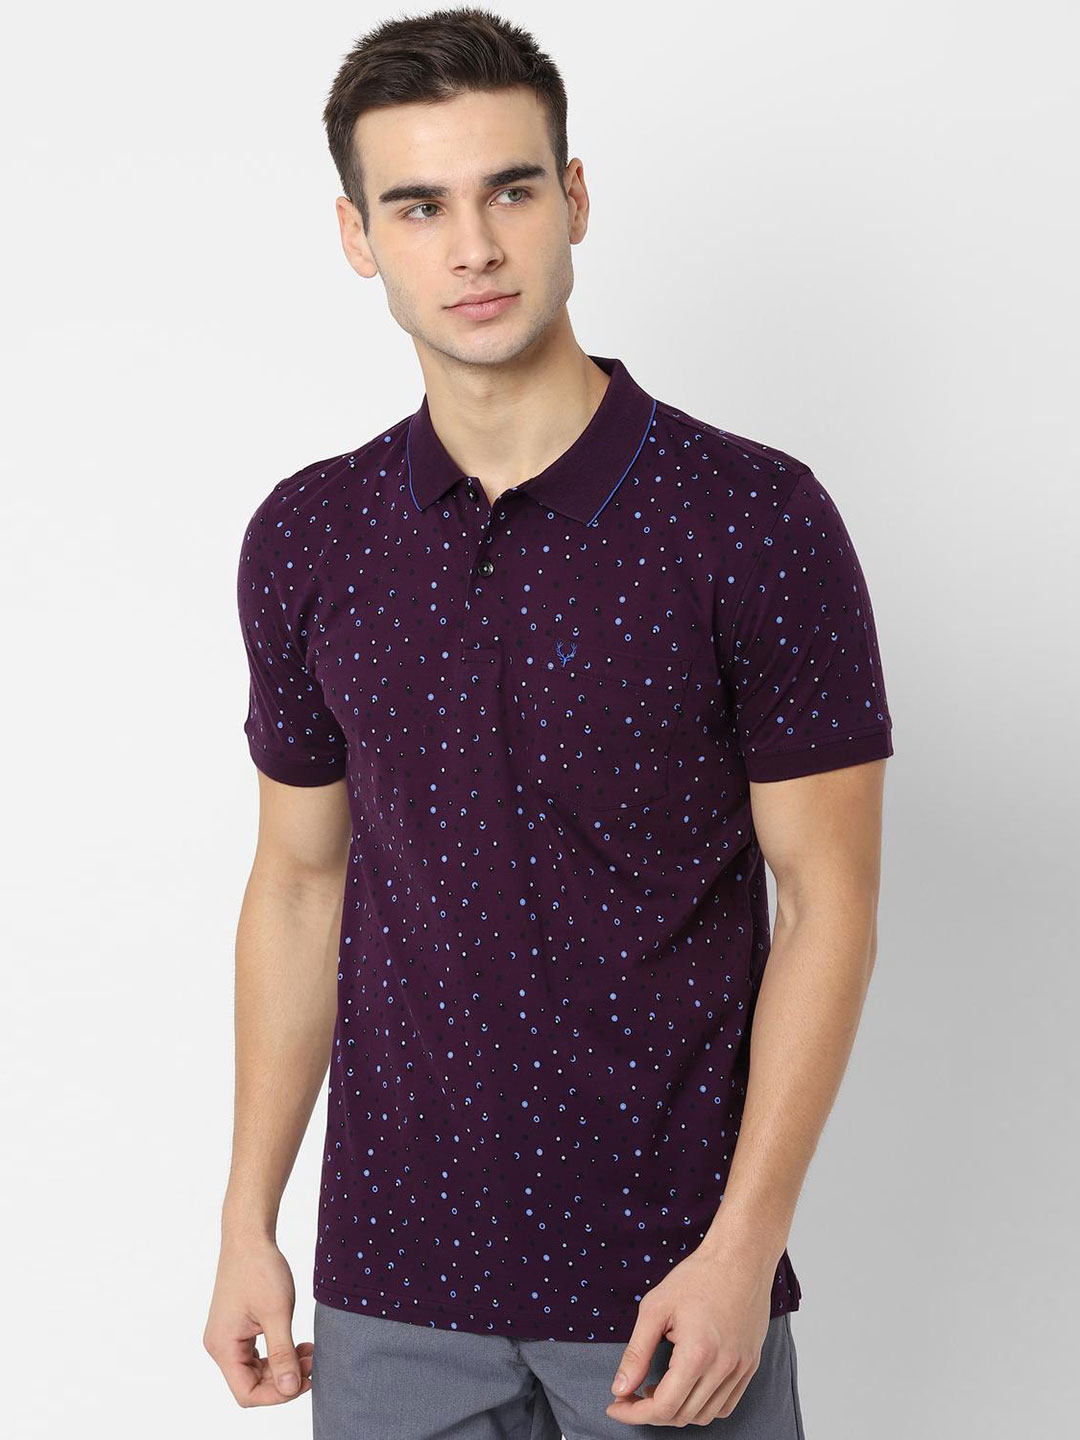 Allen Solly purple printed patch pocket t-shirt?imgeng=w_400